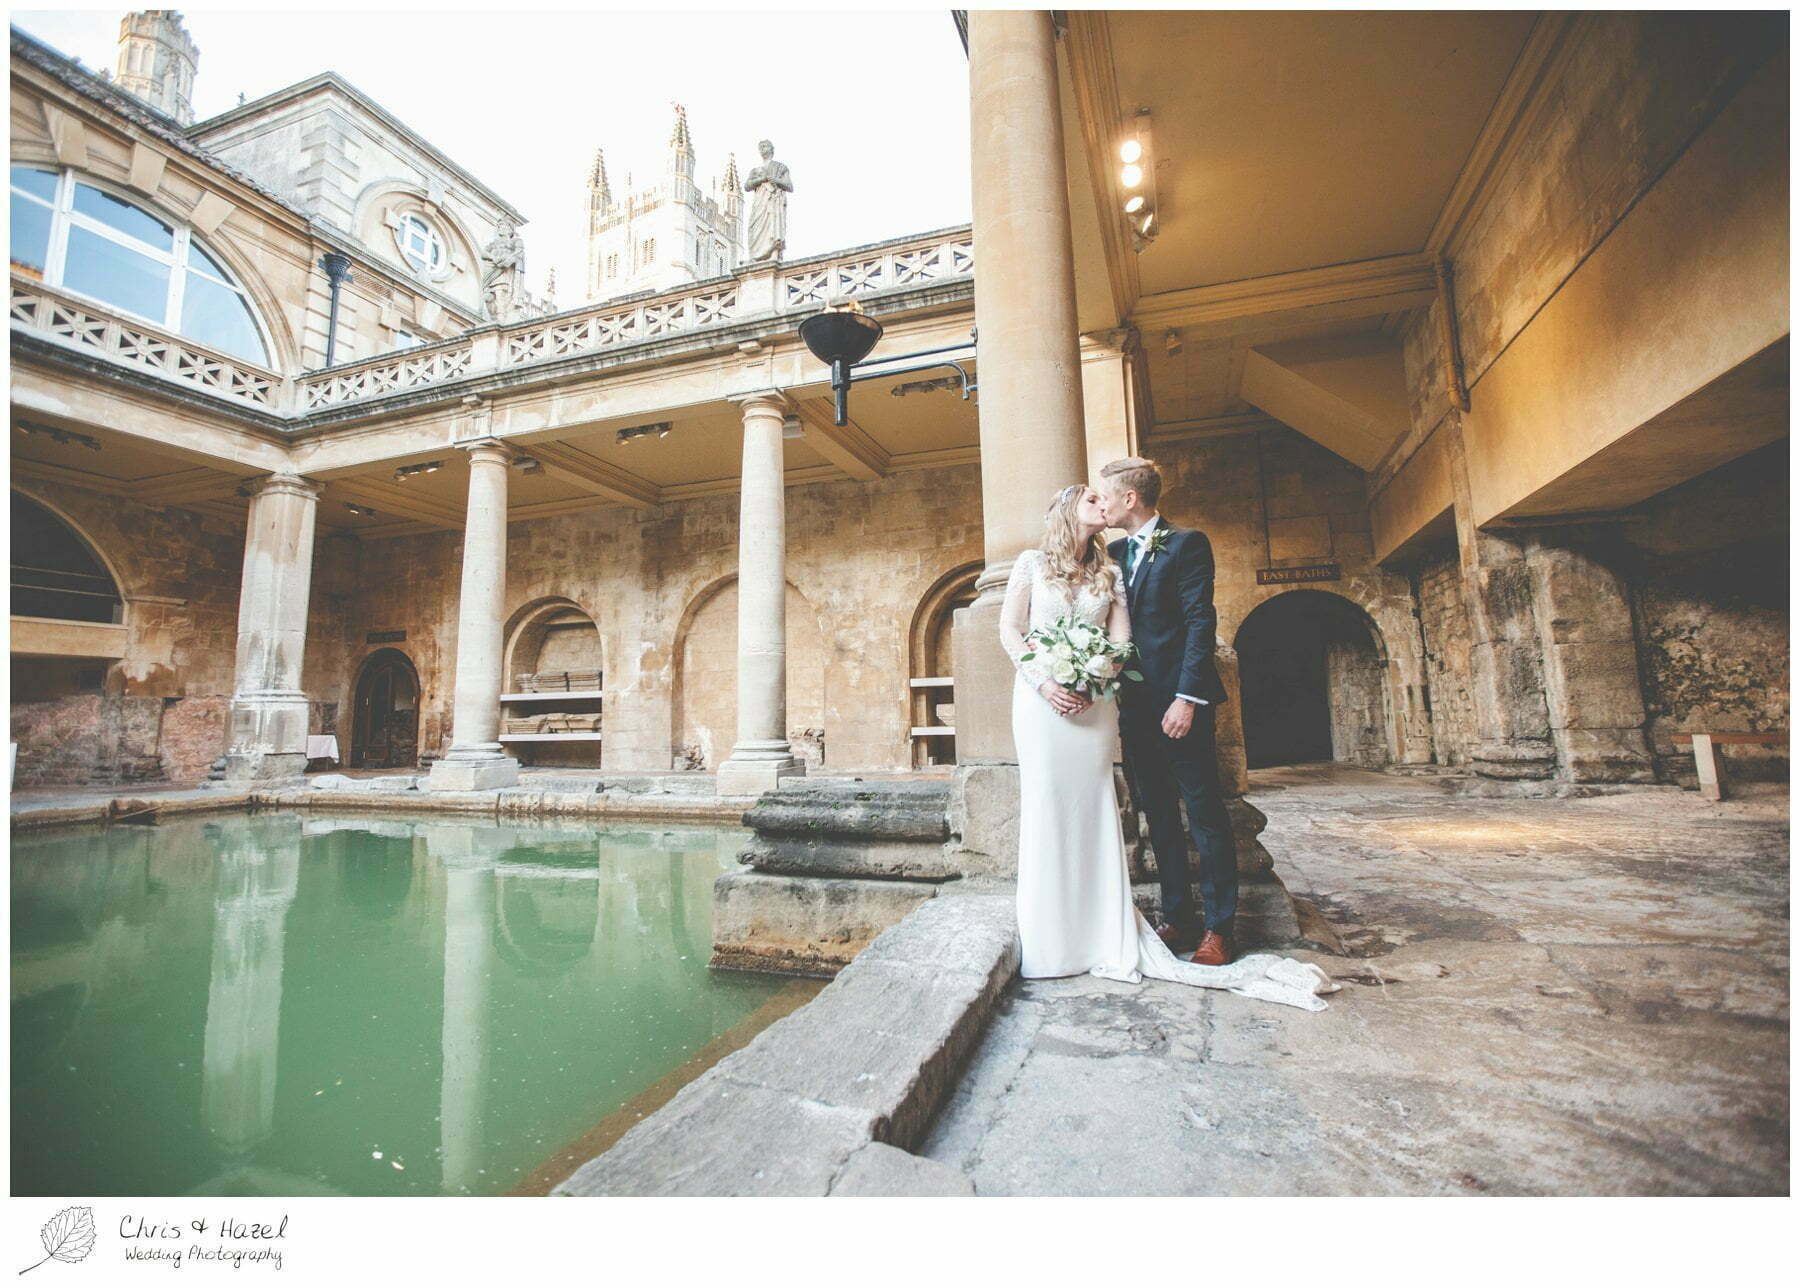 Bath Abbey, Bride and Groom portrait, bride and groom wedding photographs at Roman Baths Pump Rooms, The Roman Baths Wedding Photography, Roman Baths Wedding Photographer, Wedding in Bath, Bath Wedding Day, documentary wedding photography, Chris and Hazel Wedding Photography Bath, Andy Frost Sian Upson